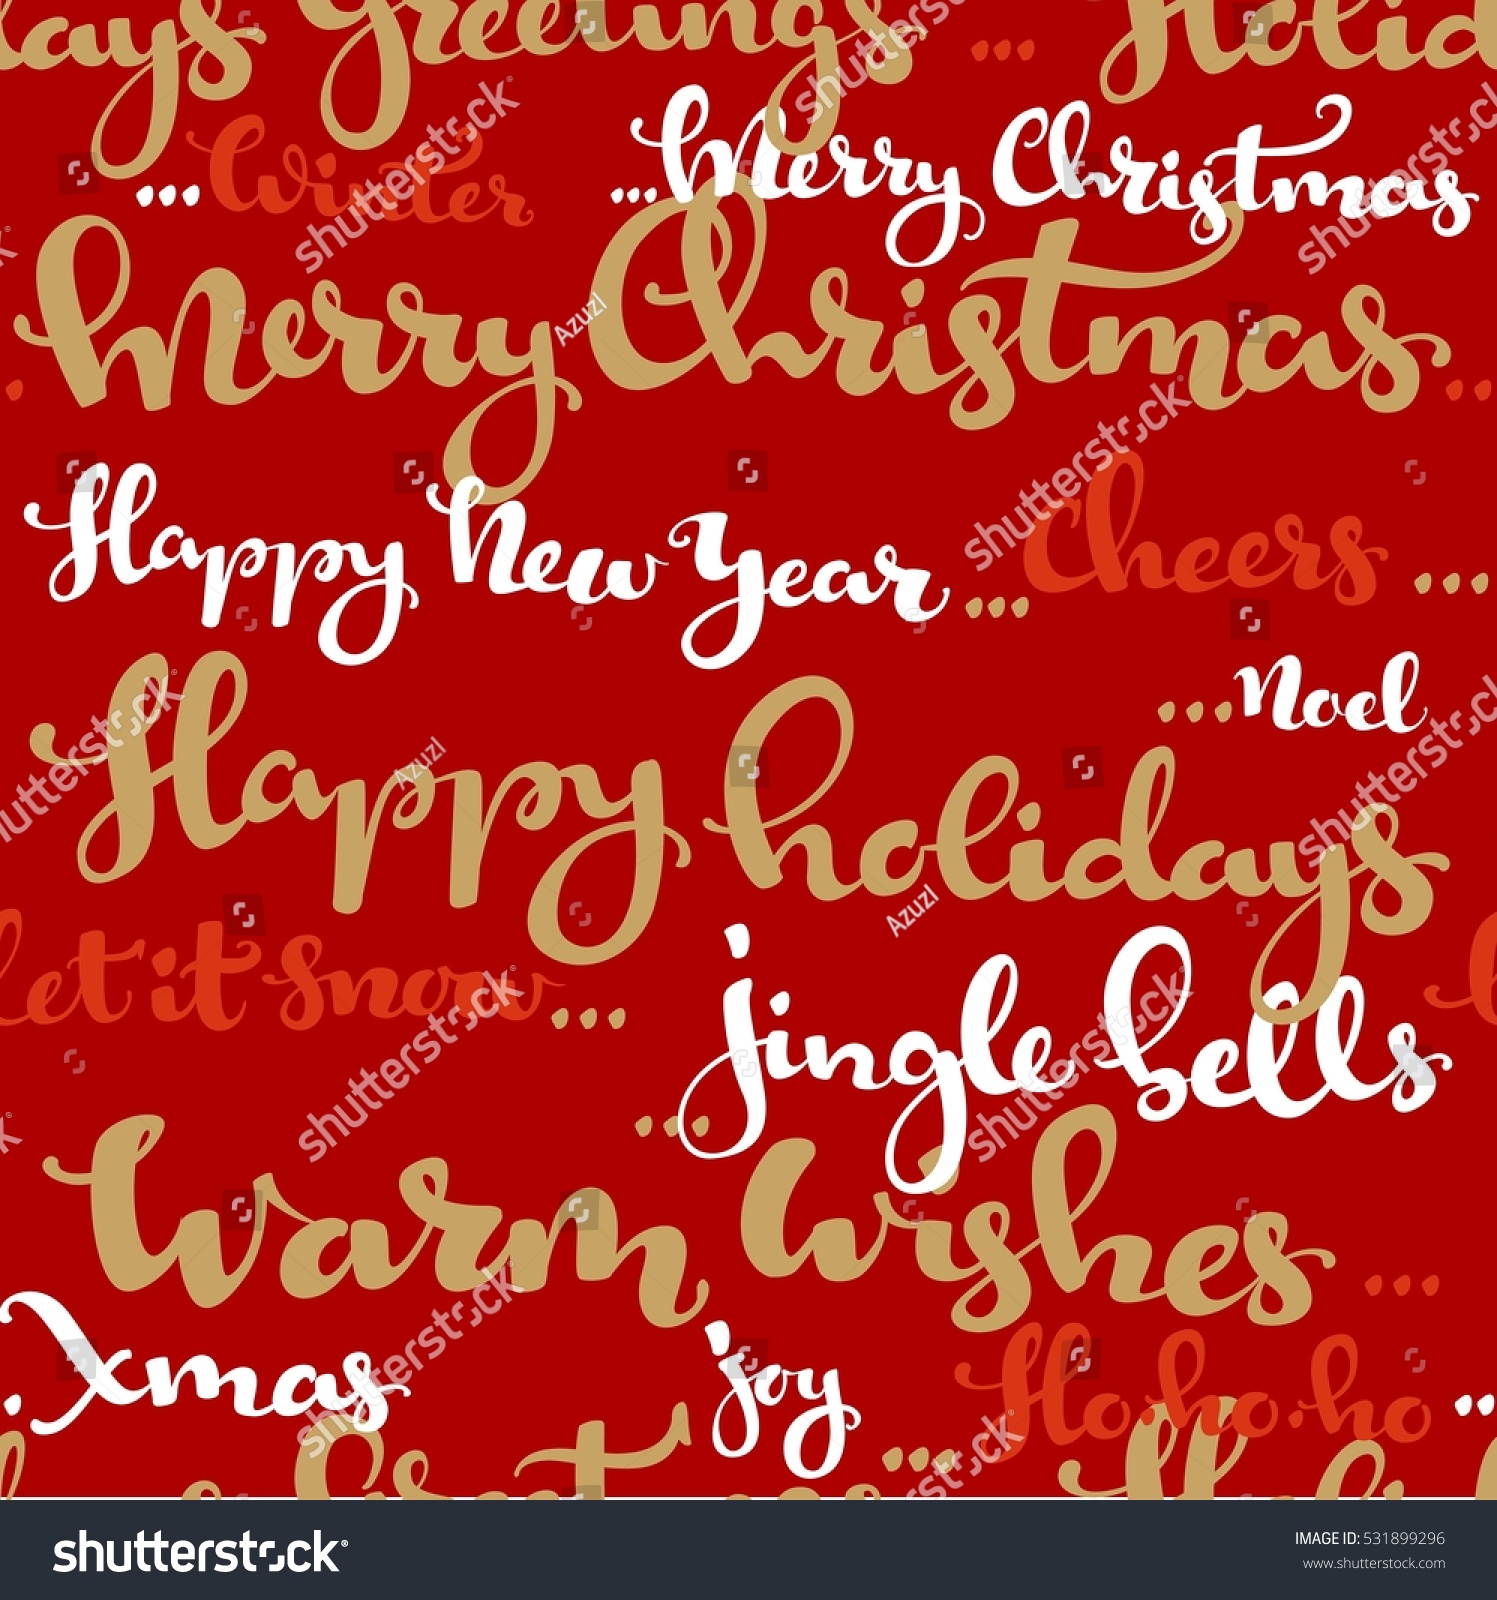 Seamless Pattern Christmas Greetings Wishes Calligraphy Stock Vector